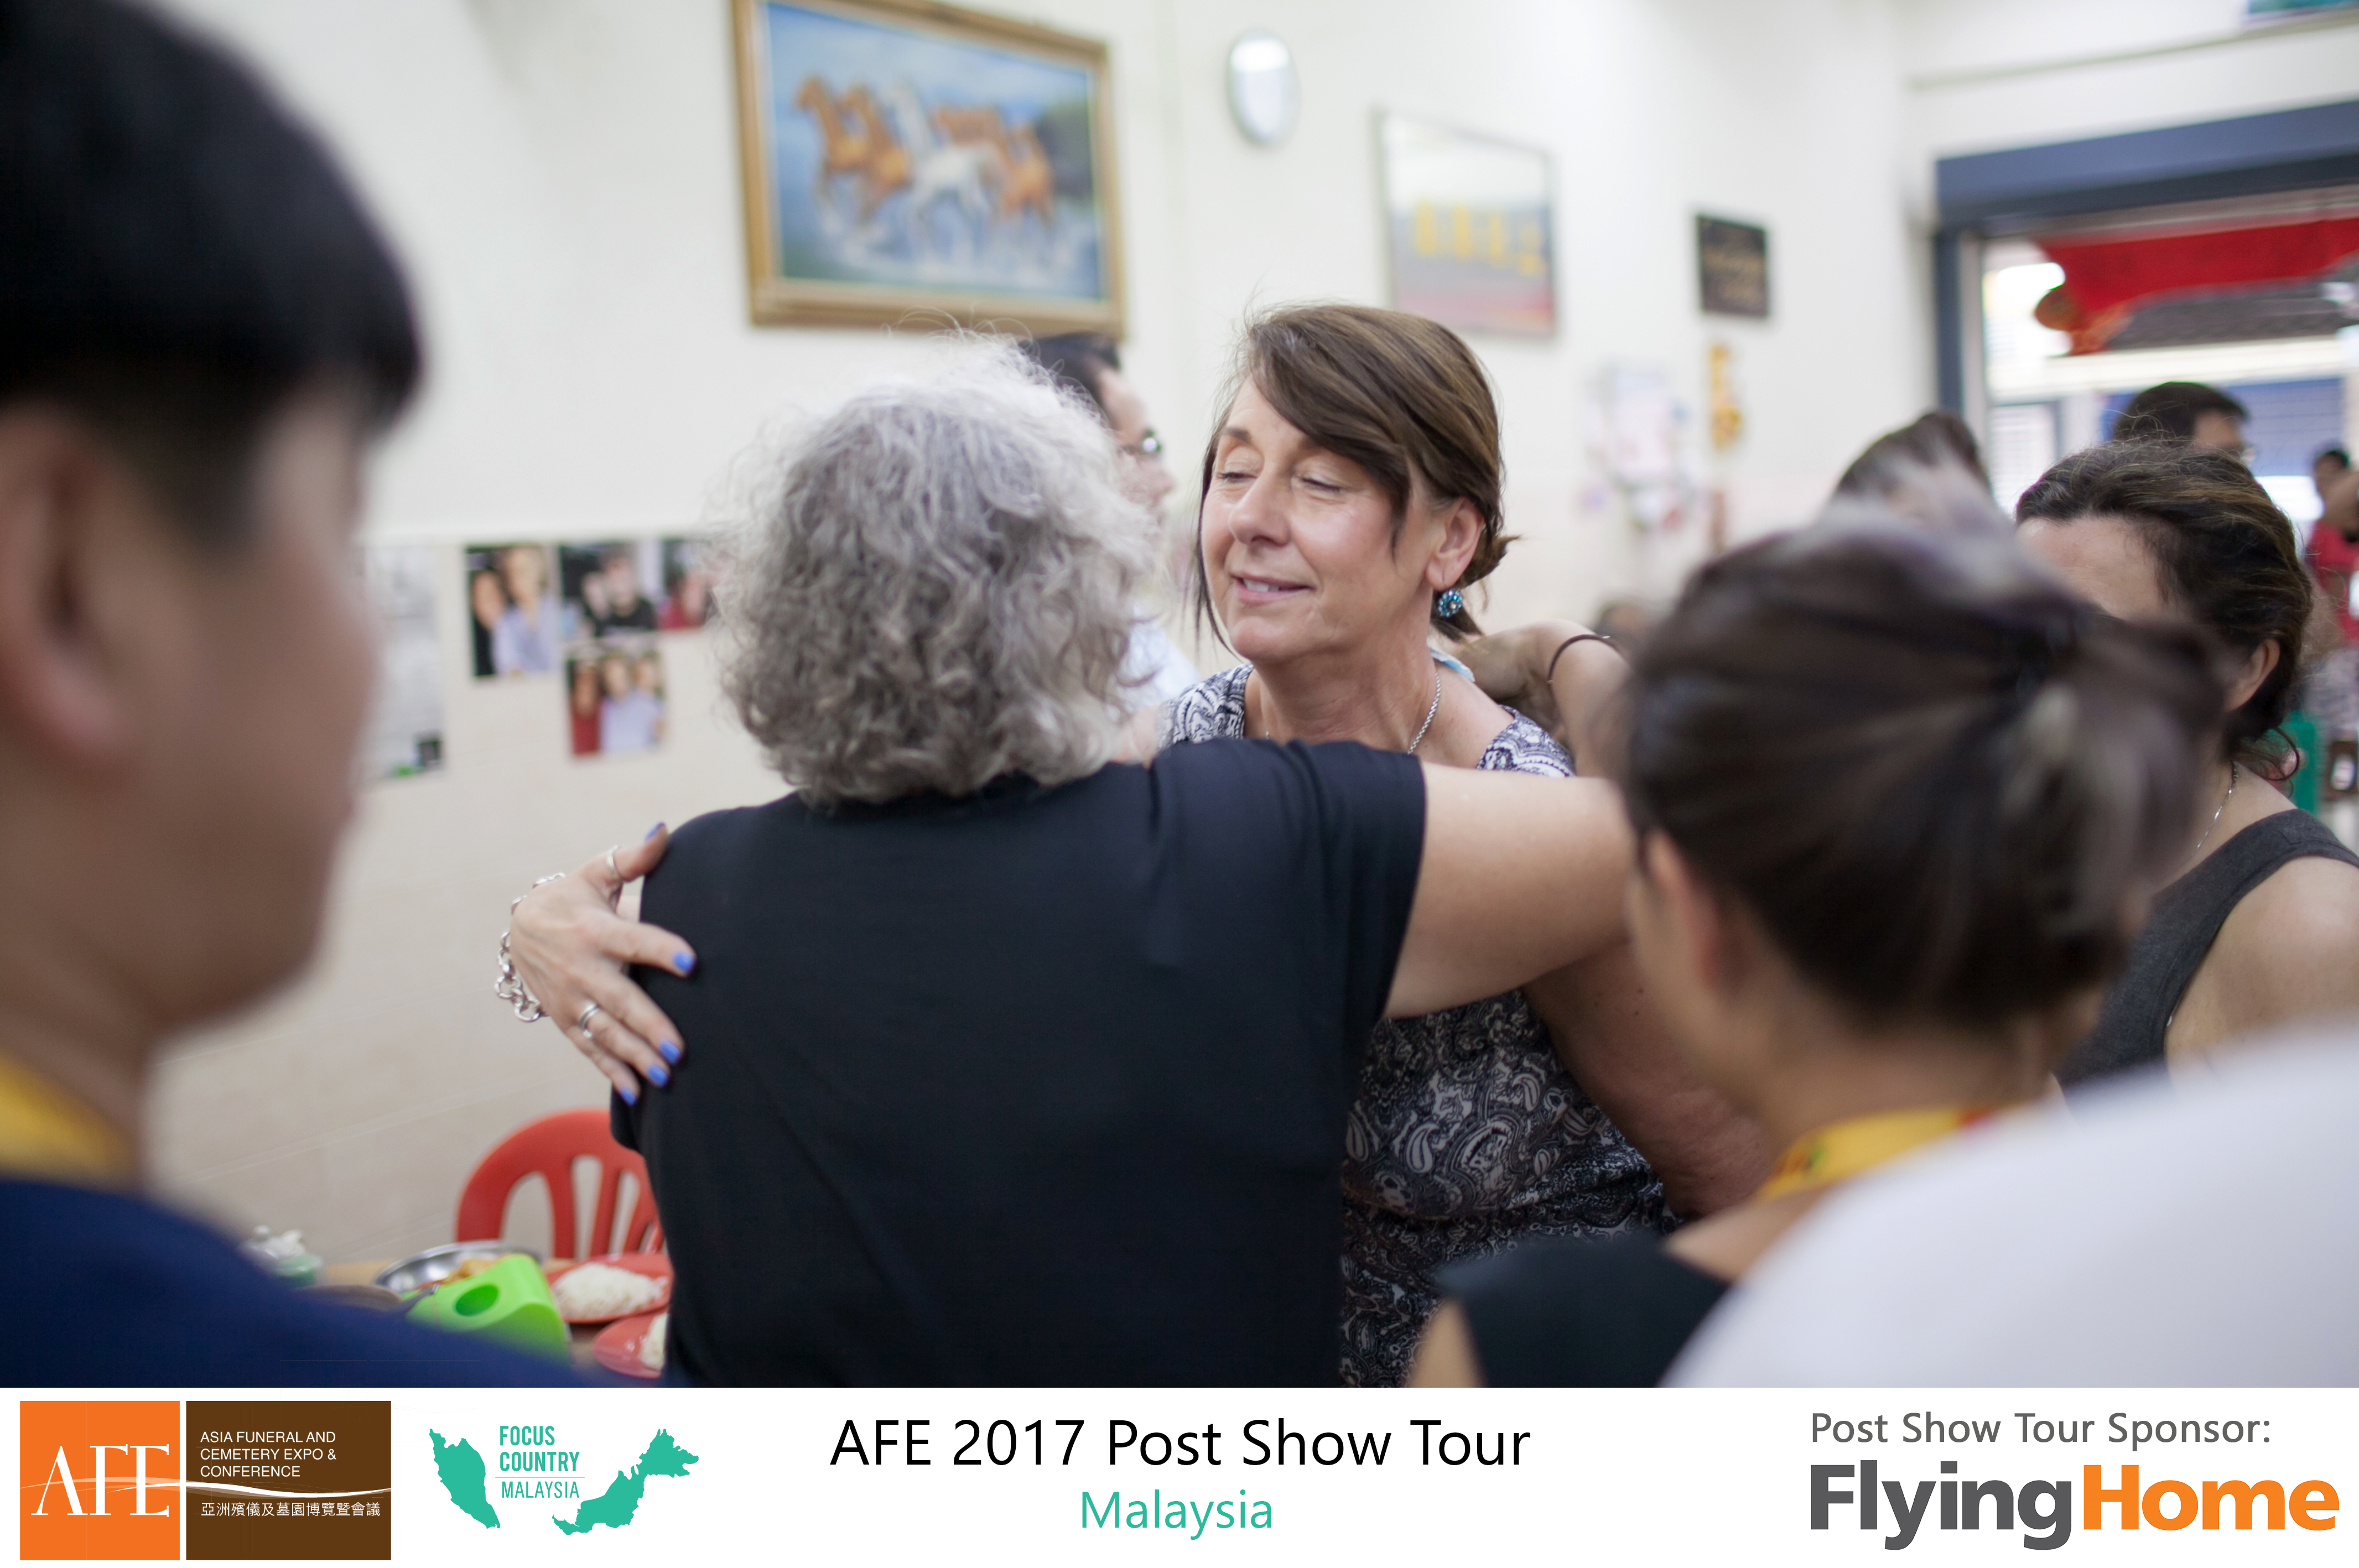 AFE Post Show Tour 2017 Day 4 - 28